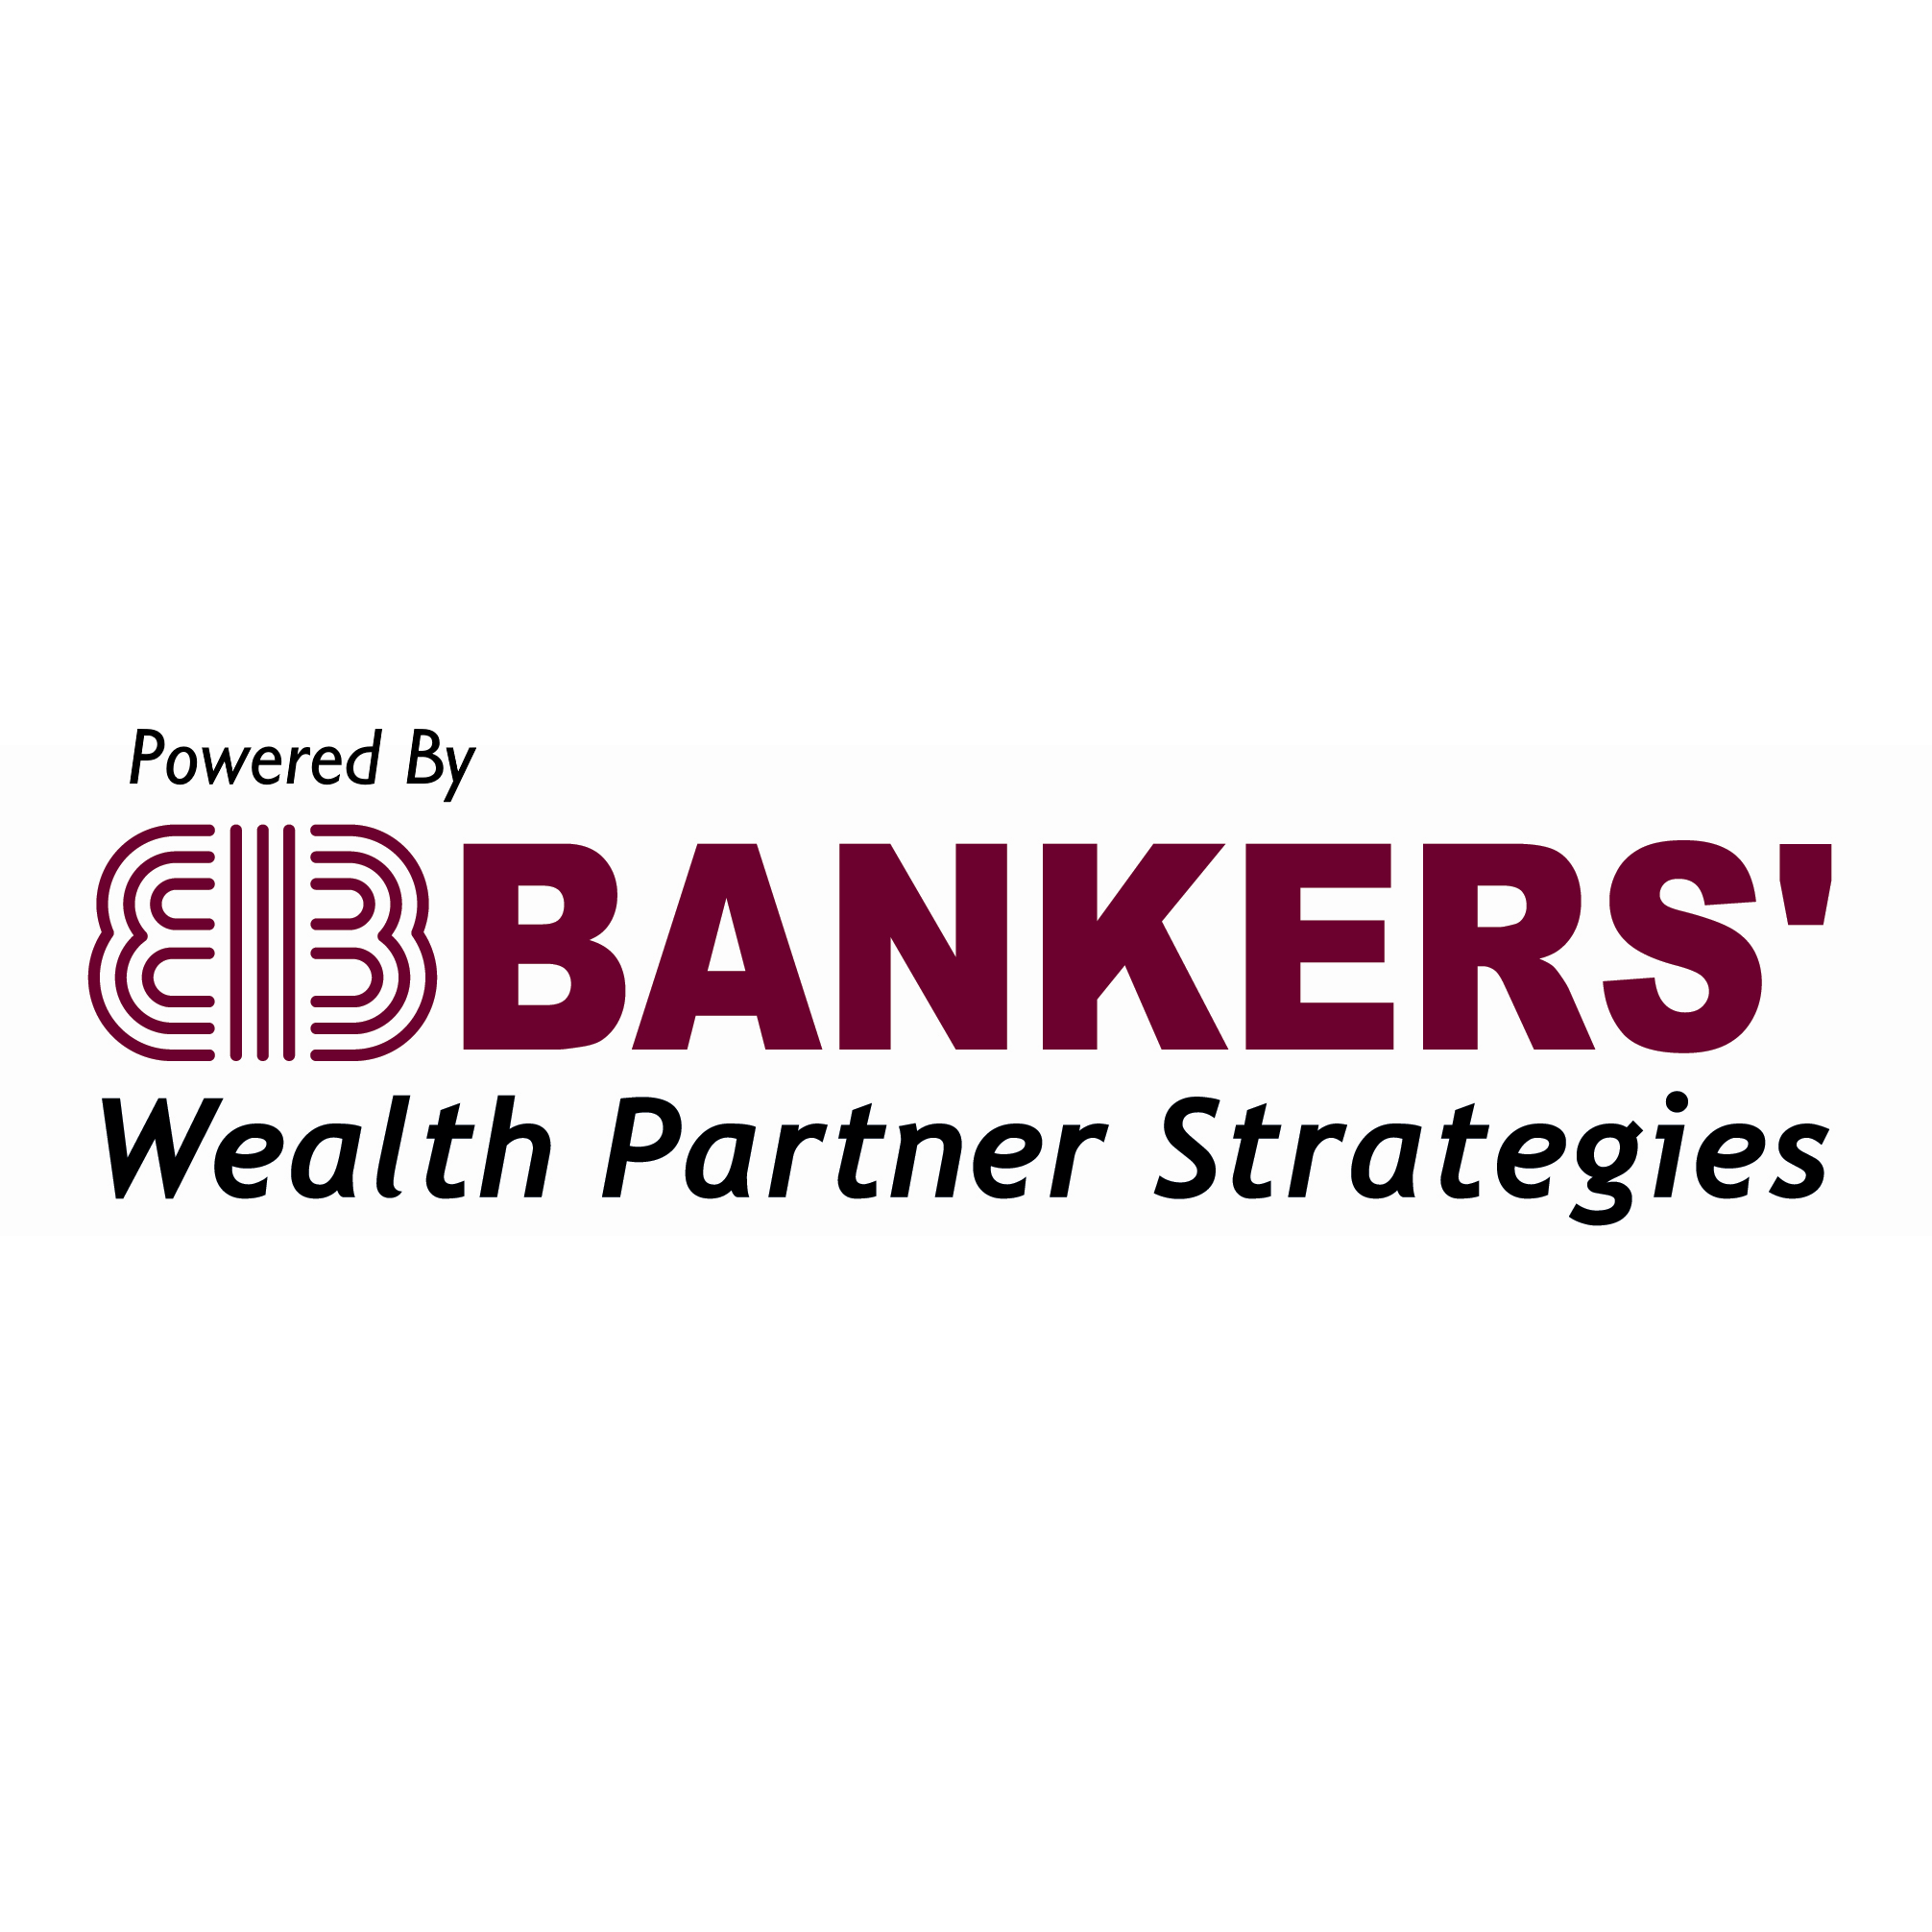 Bankers' Wealth Partner Strategies